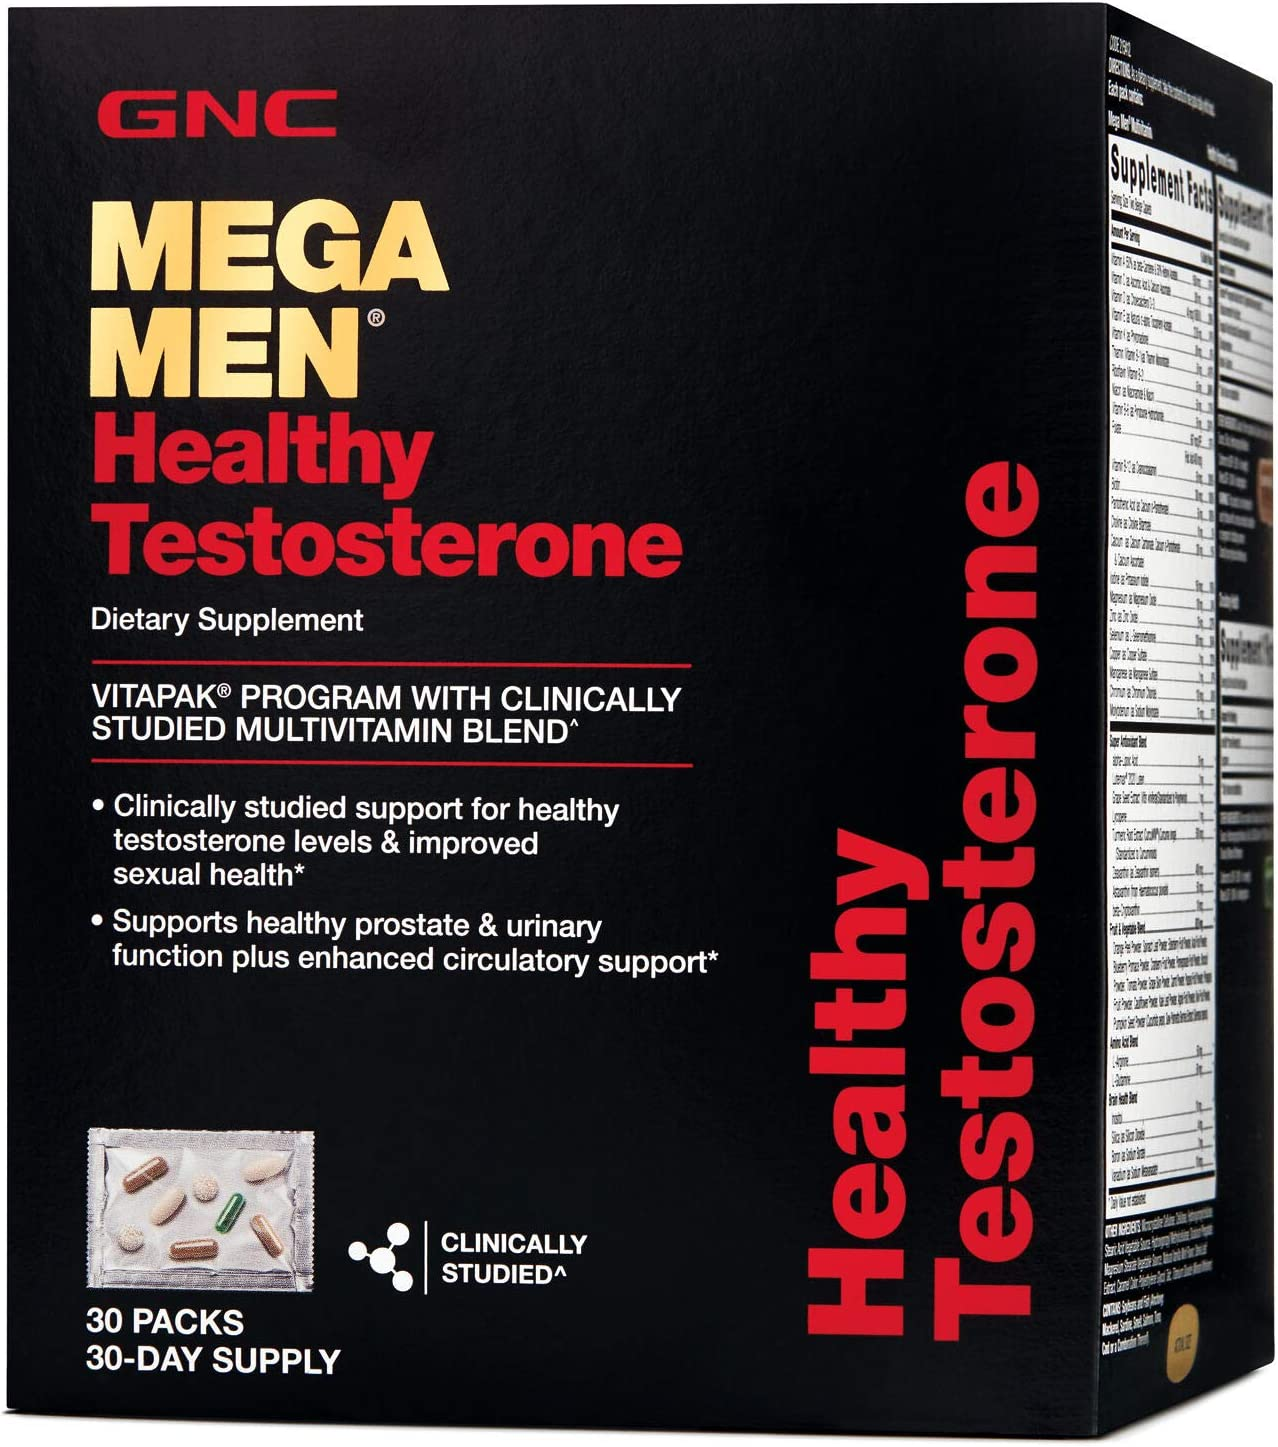 GNC Mega Men Healthy Testosterone, 30 Packs